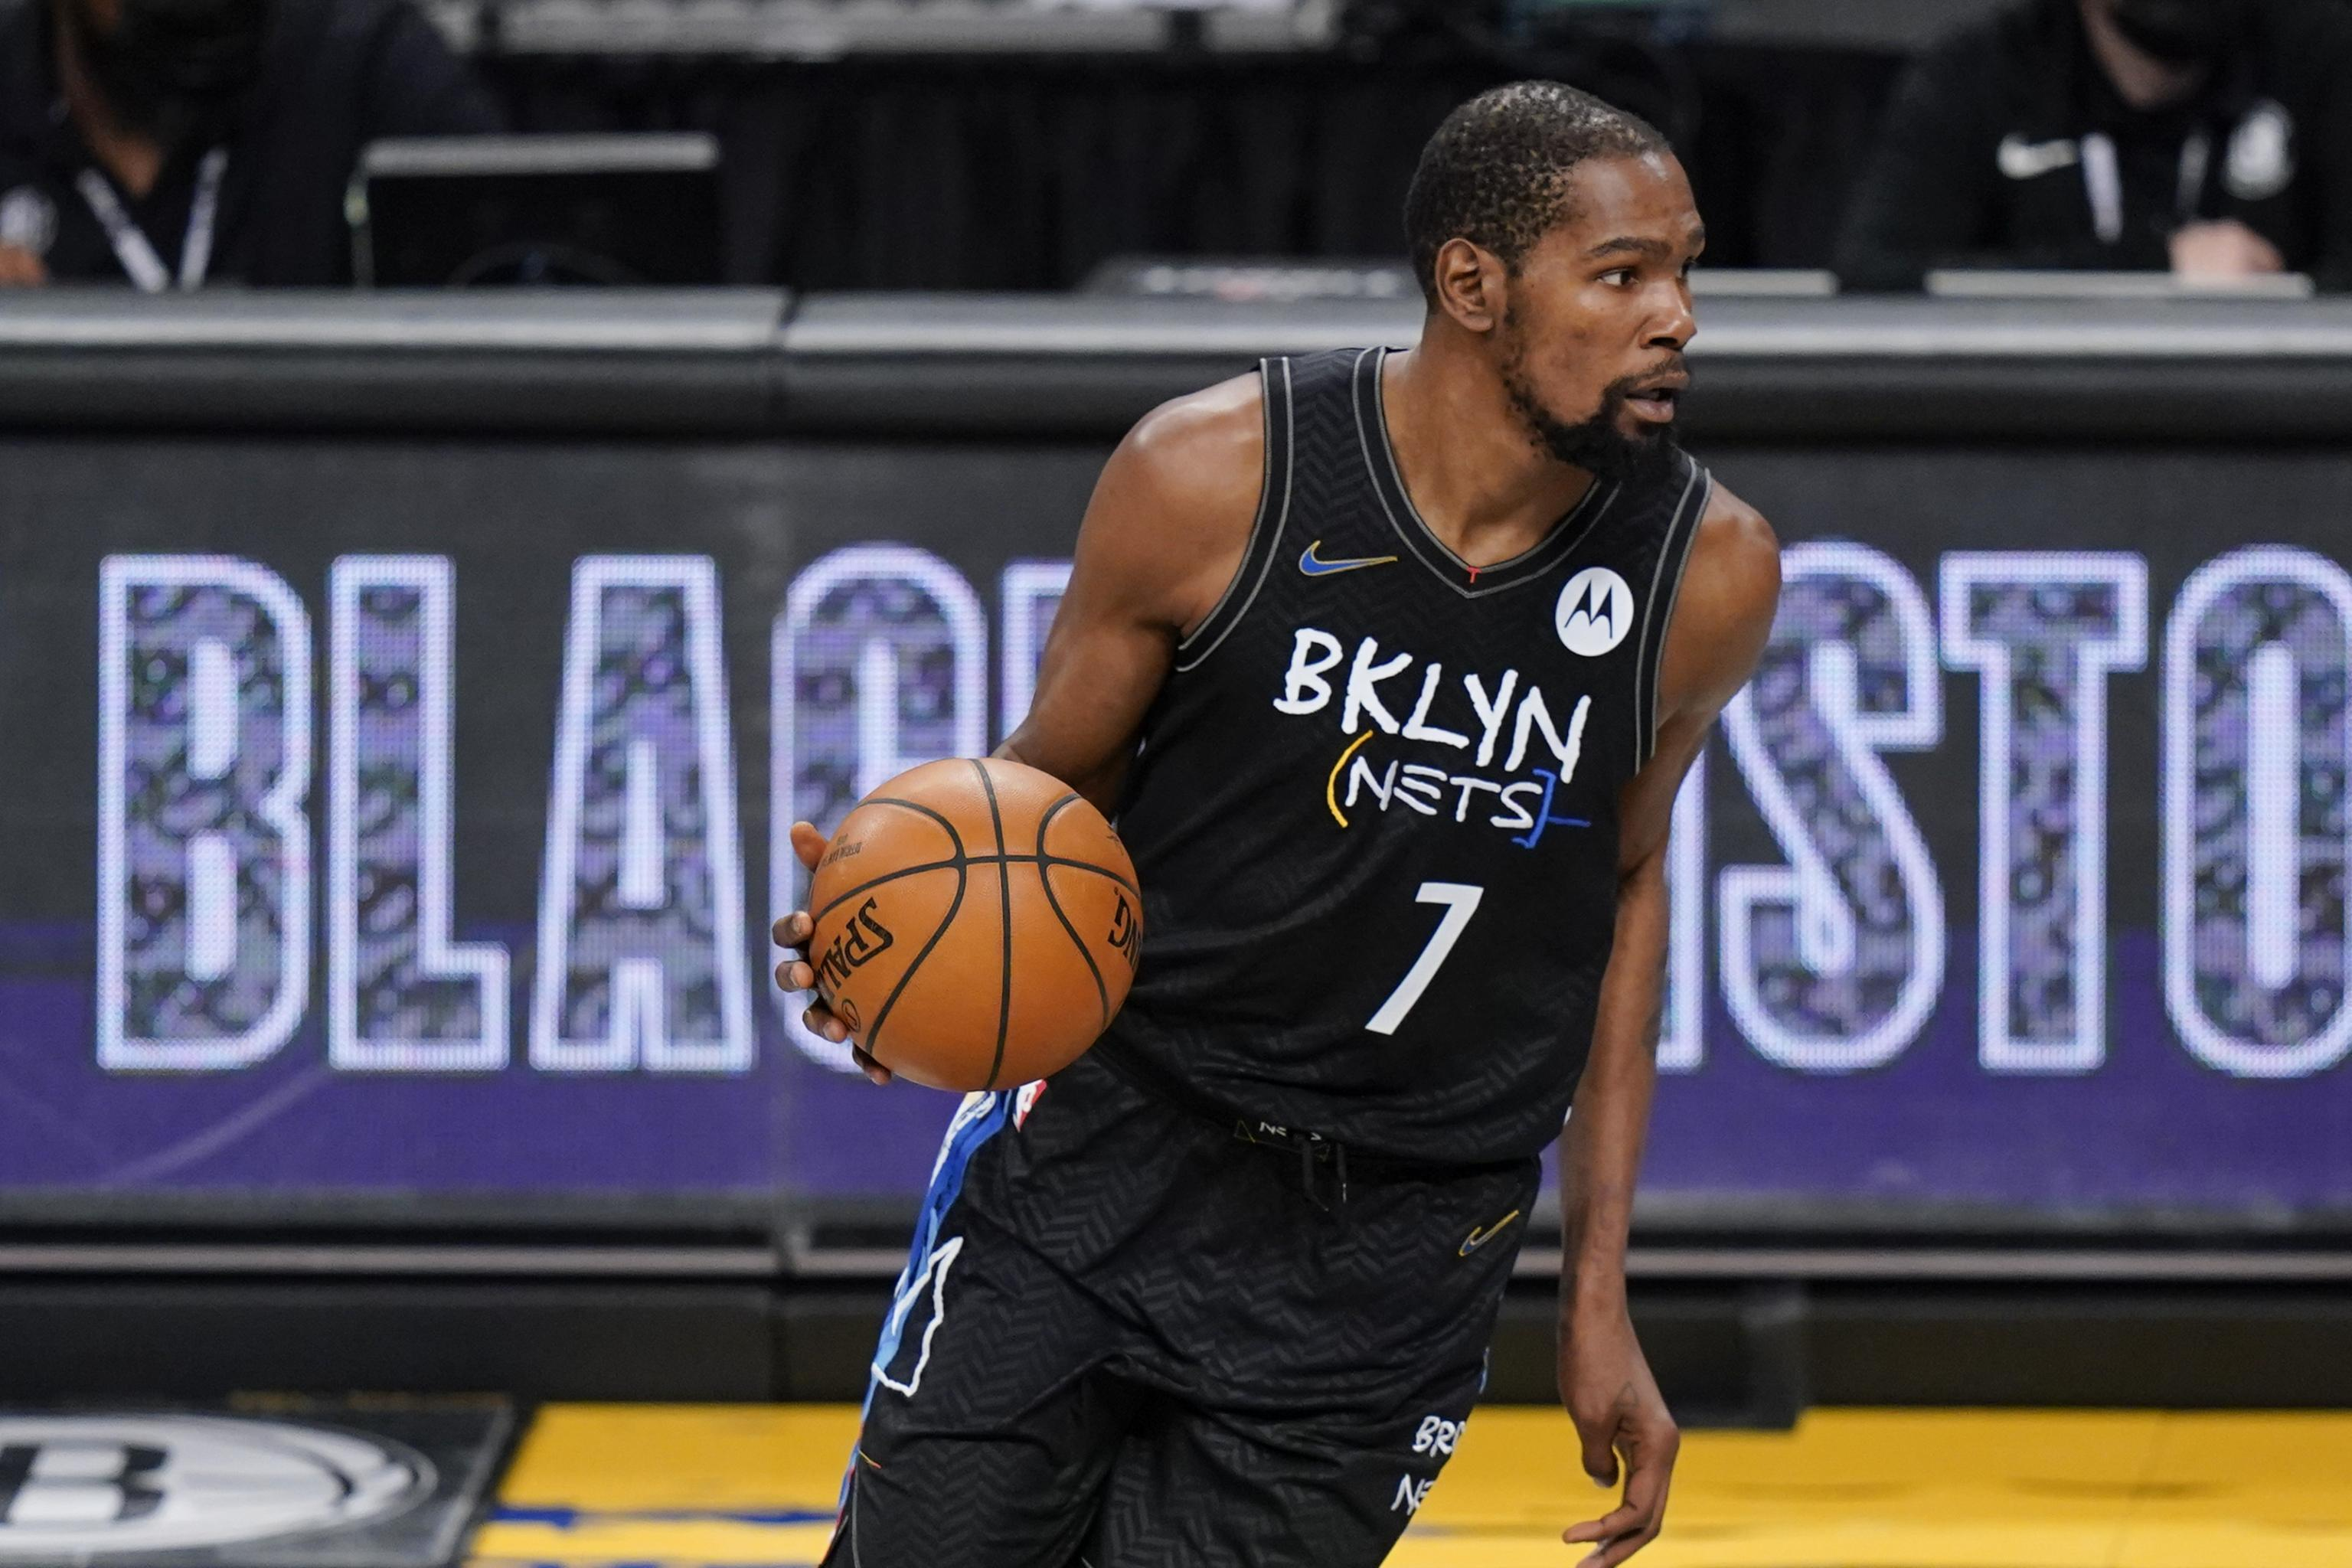 Eastern captain for the 2021 All-Star Starters, Kevin Durant